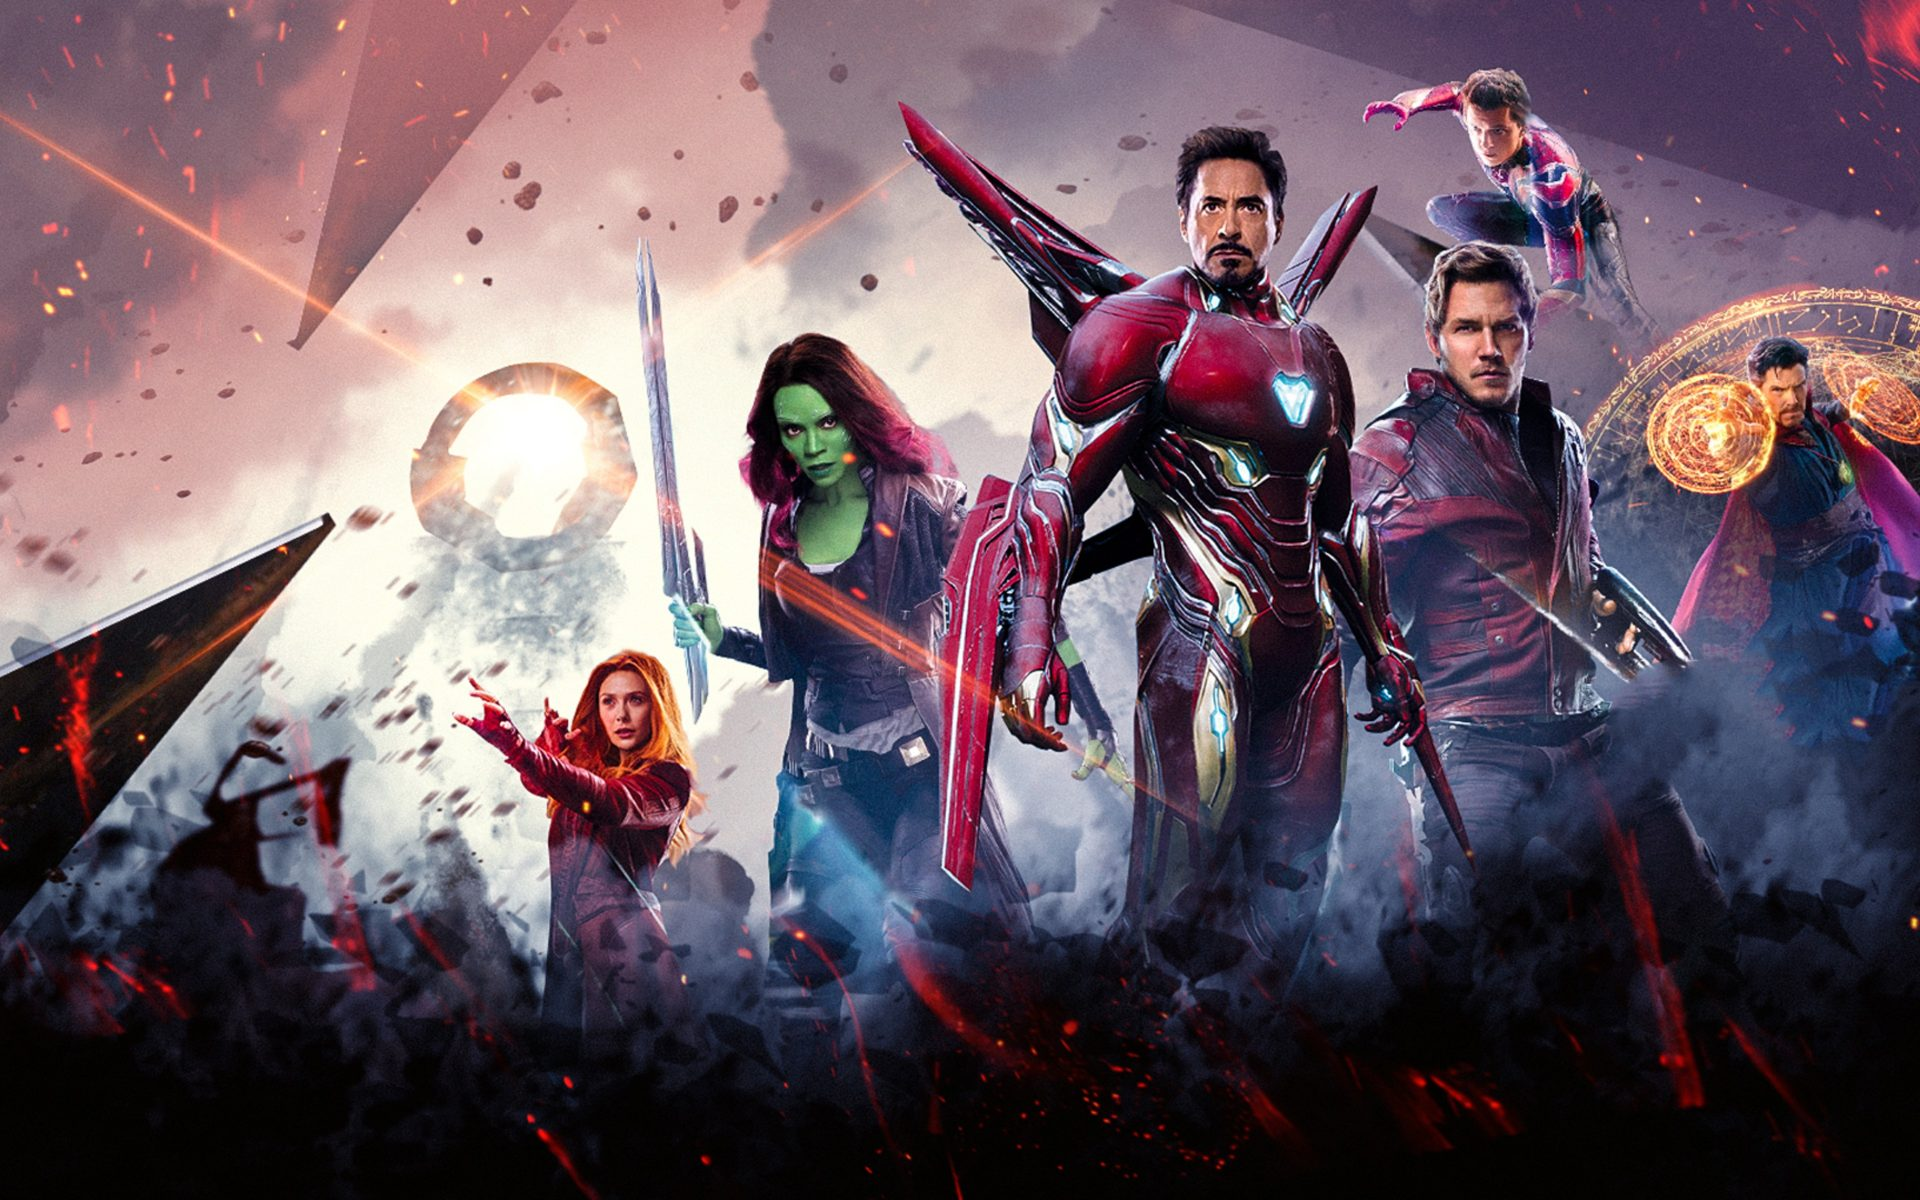 Infinity War Super Heroes Wallpaper Widescreen-1920x1200